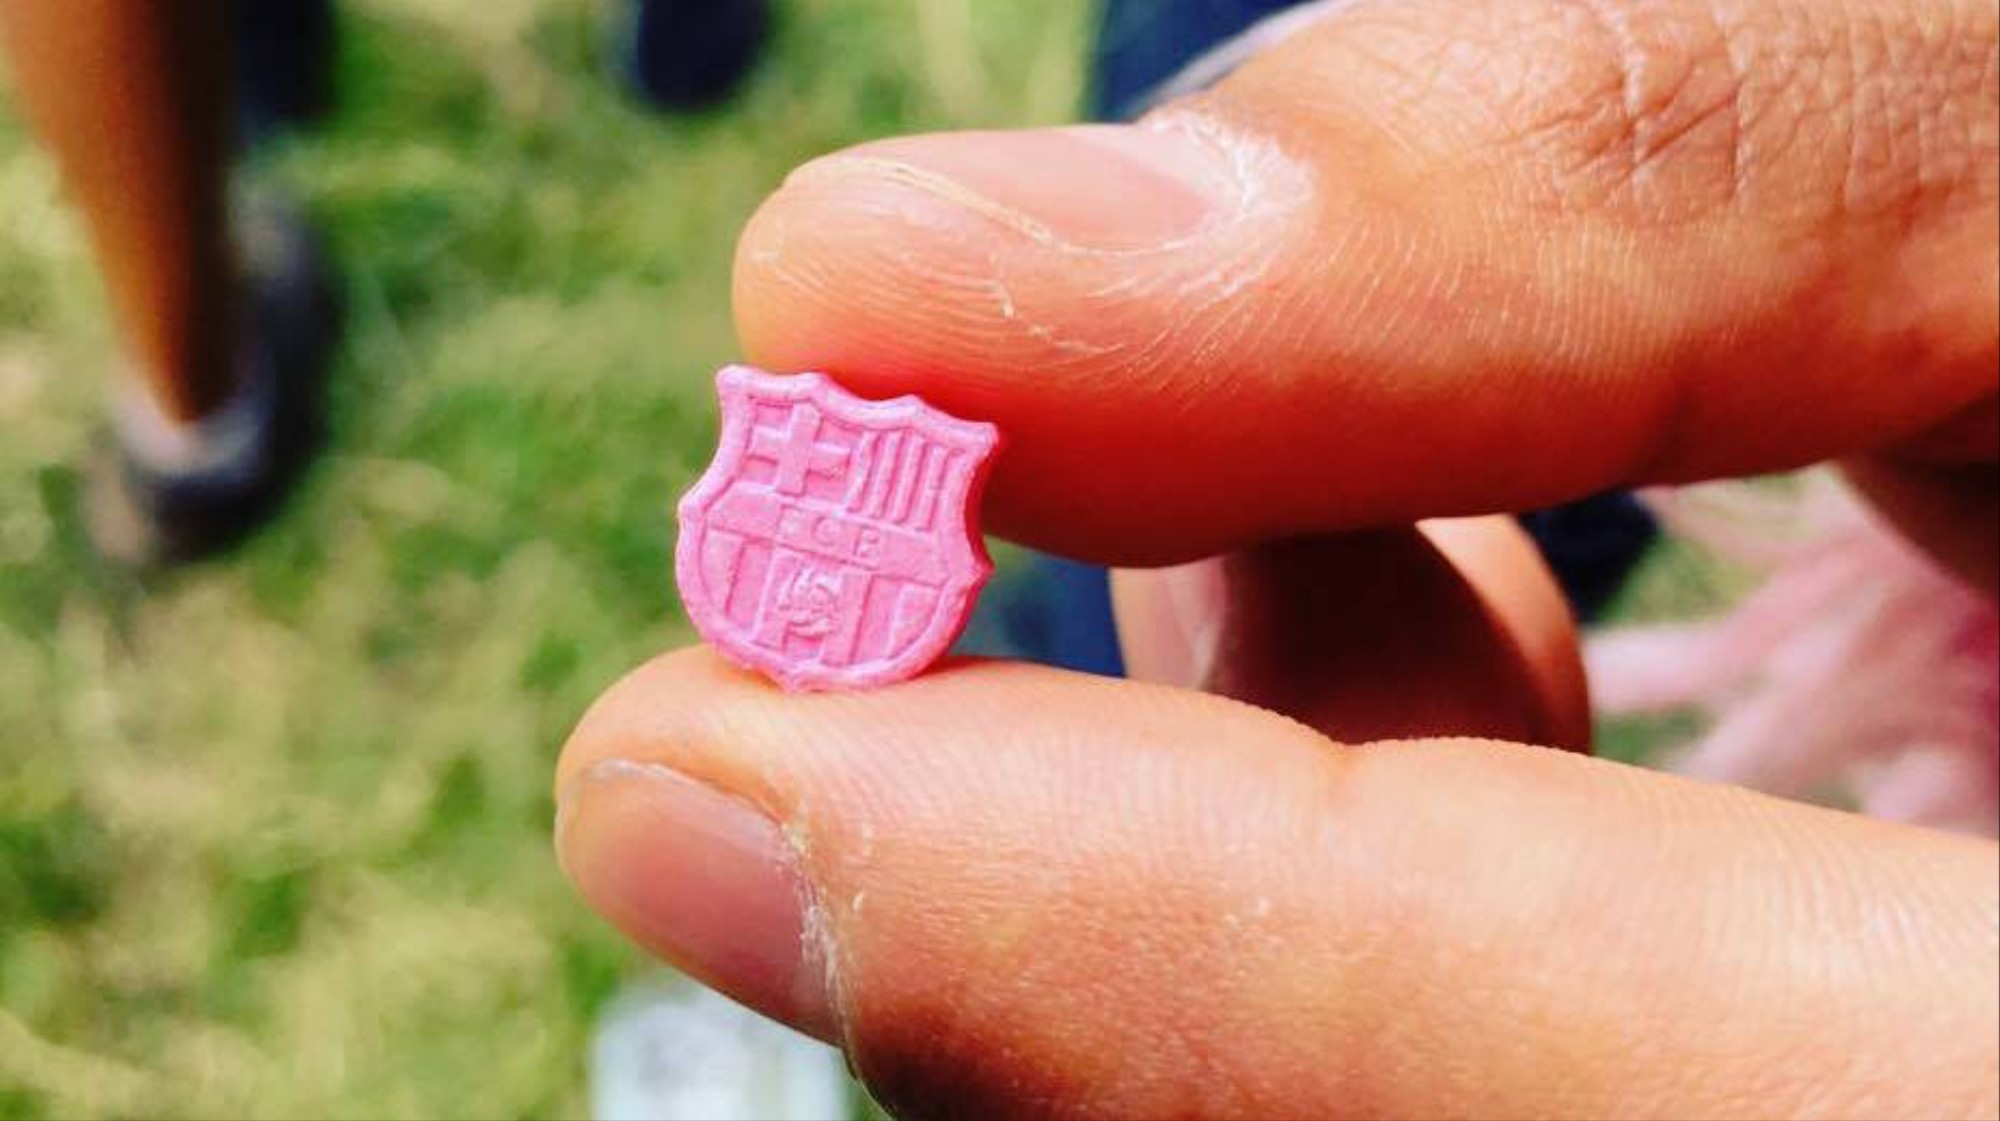 All the Worst Drug Chat We Overheard at Glastonbury - VICE